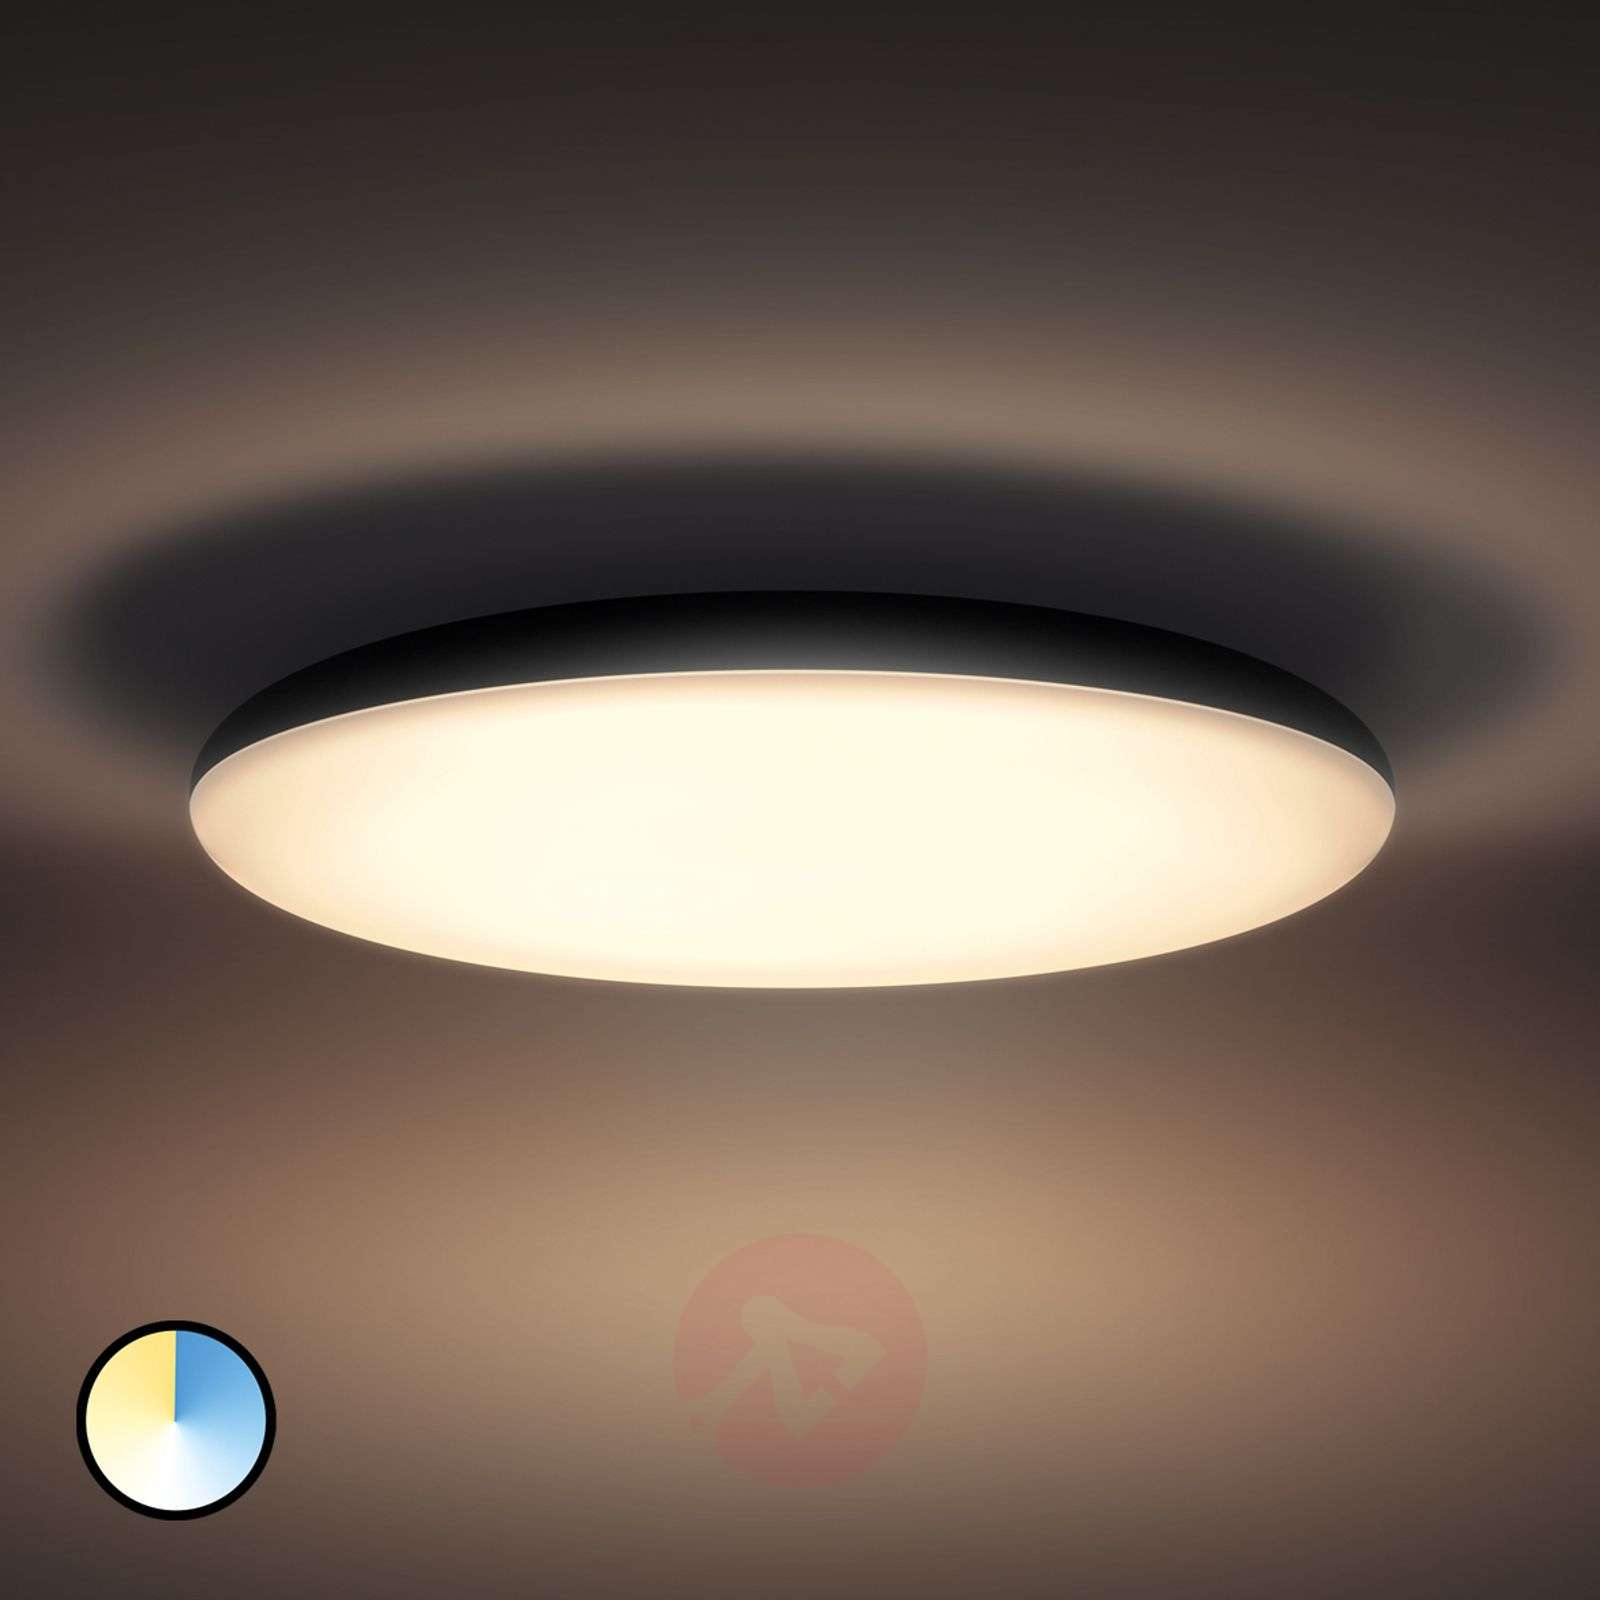 Plafoniere Ufficio Philips : Acquista plafoniera led cher philips hue dimmer lampade.it